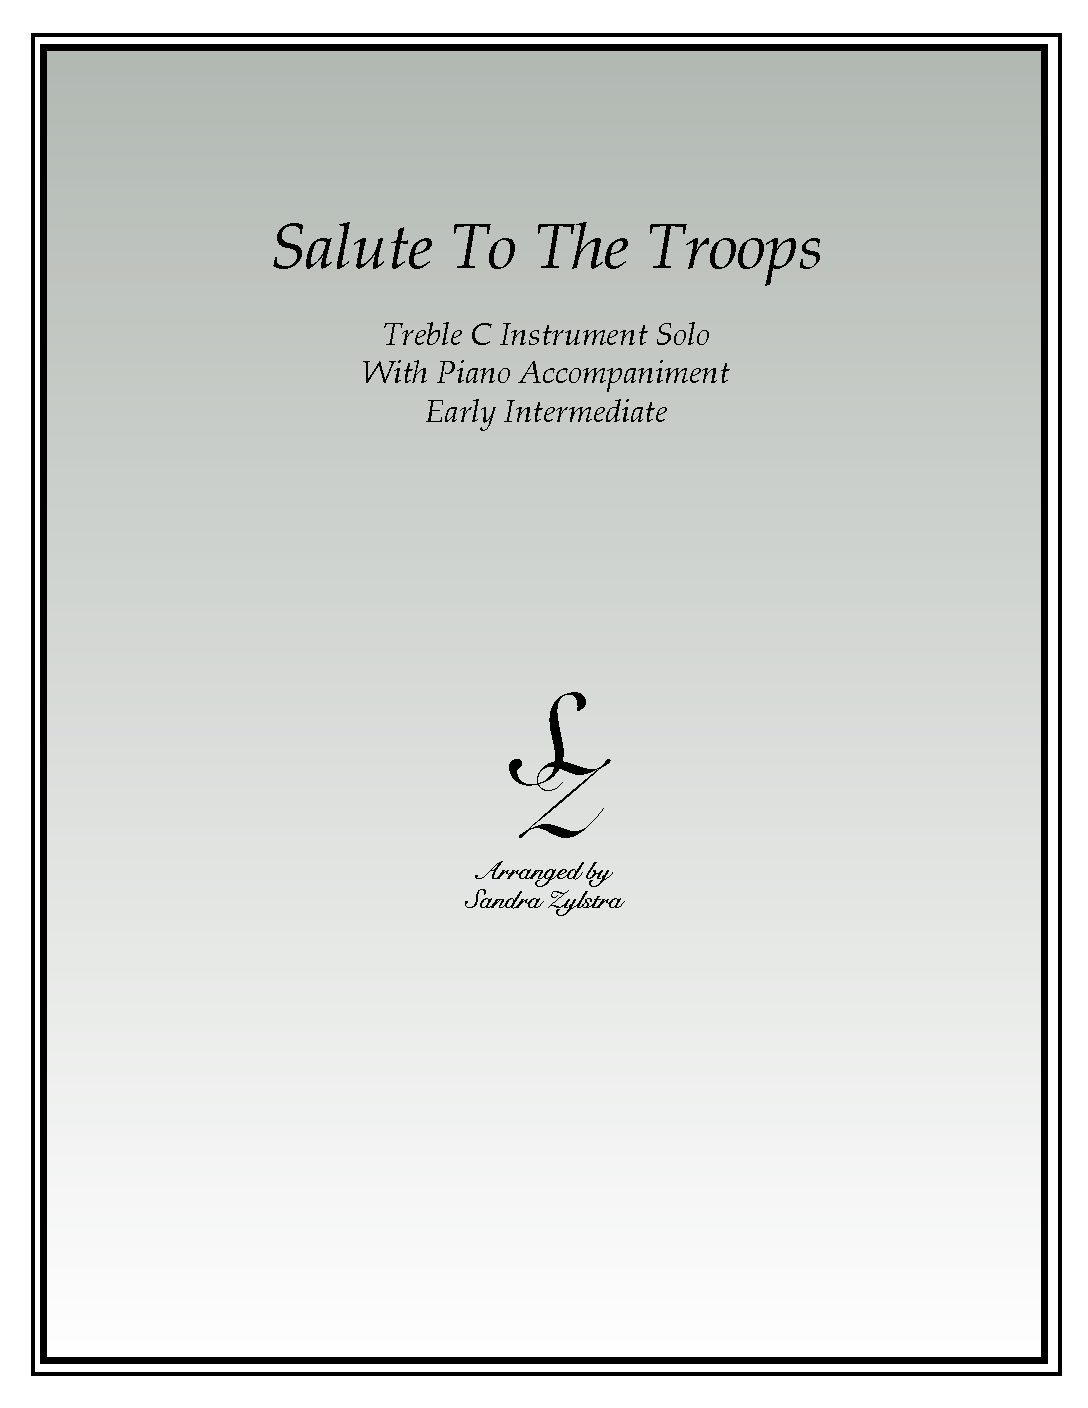 Salute To The Troops -Treble C Instrument Solo